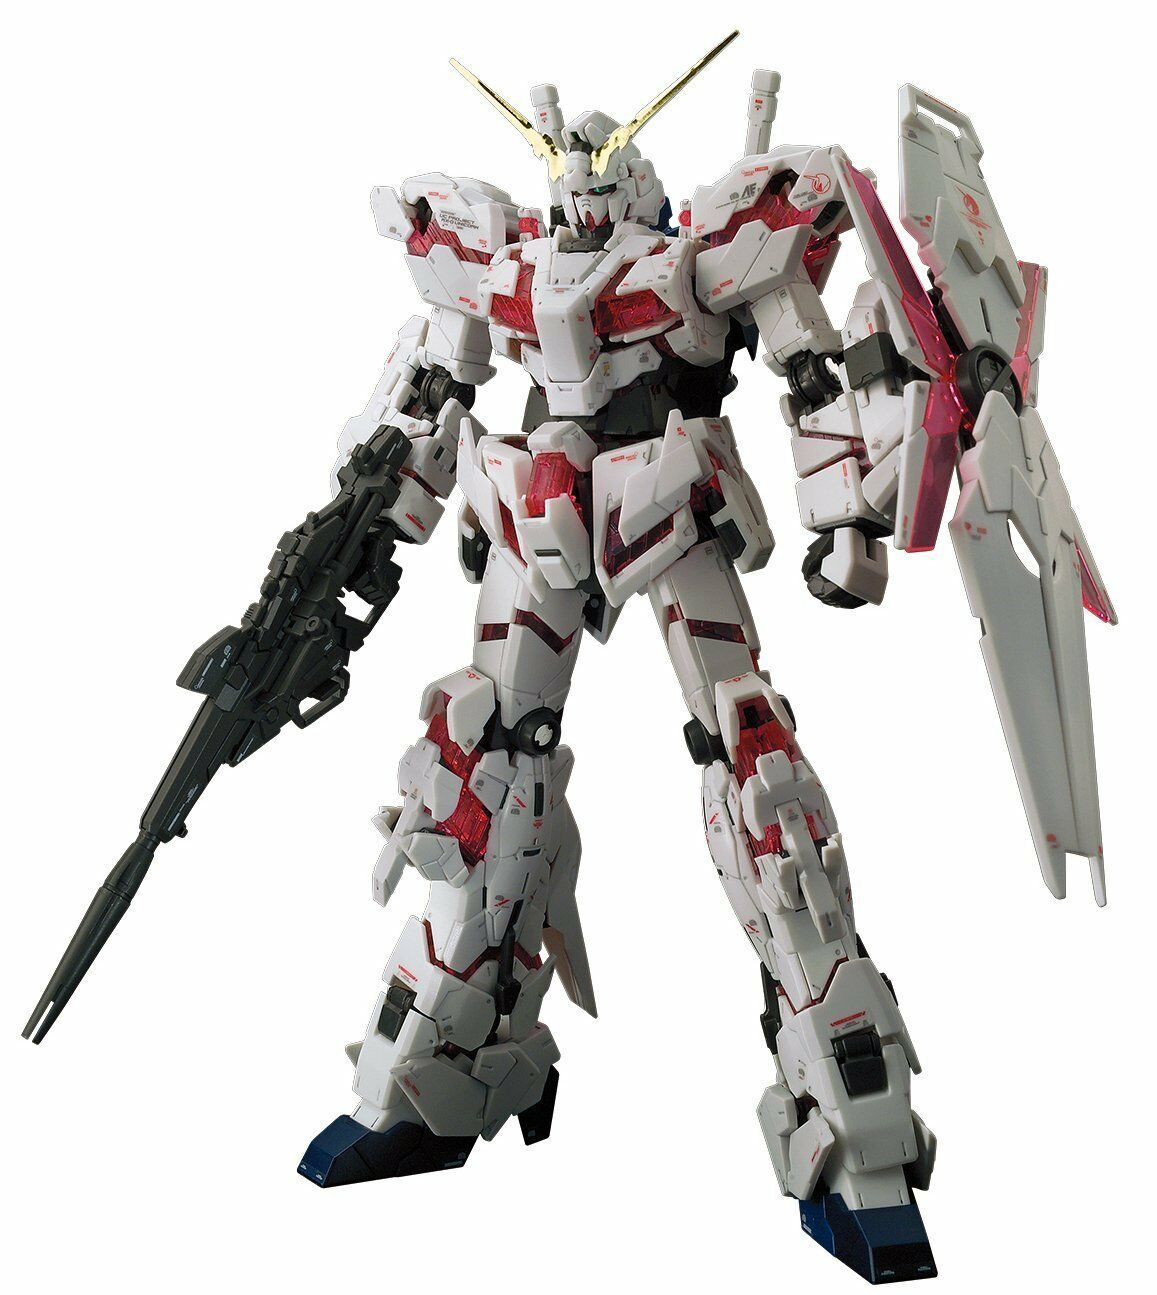 RG Mobile Suit Gundam Unicorn Gundam 1 144 Scale Gunpla Model Kit From Japan F S